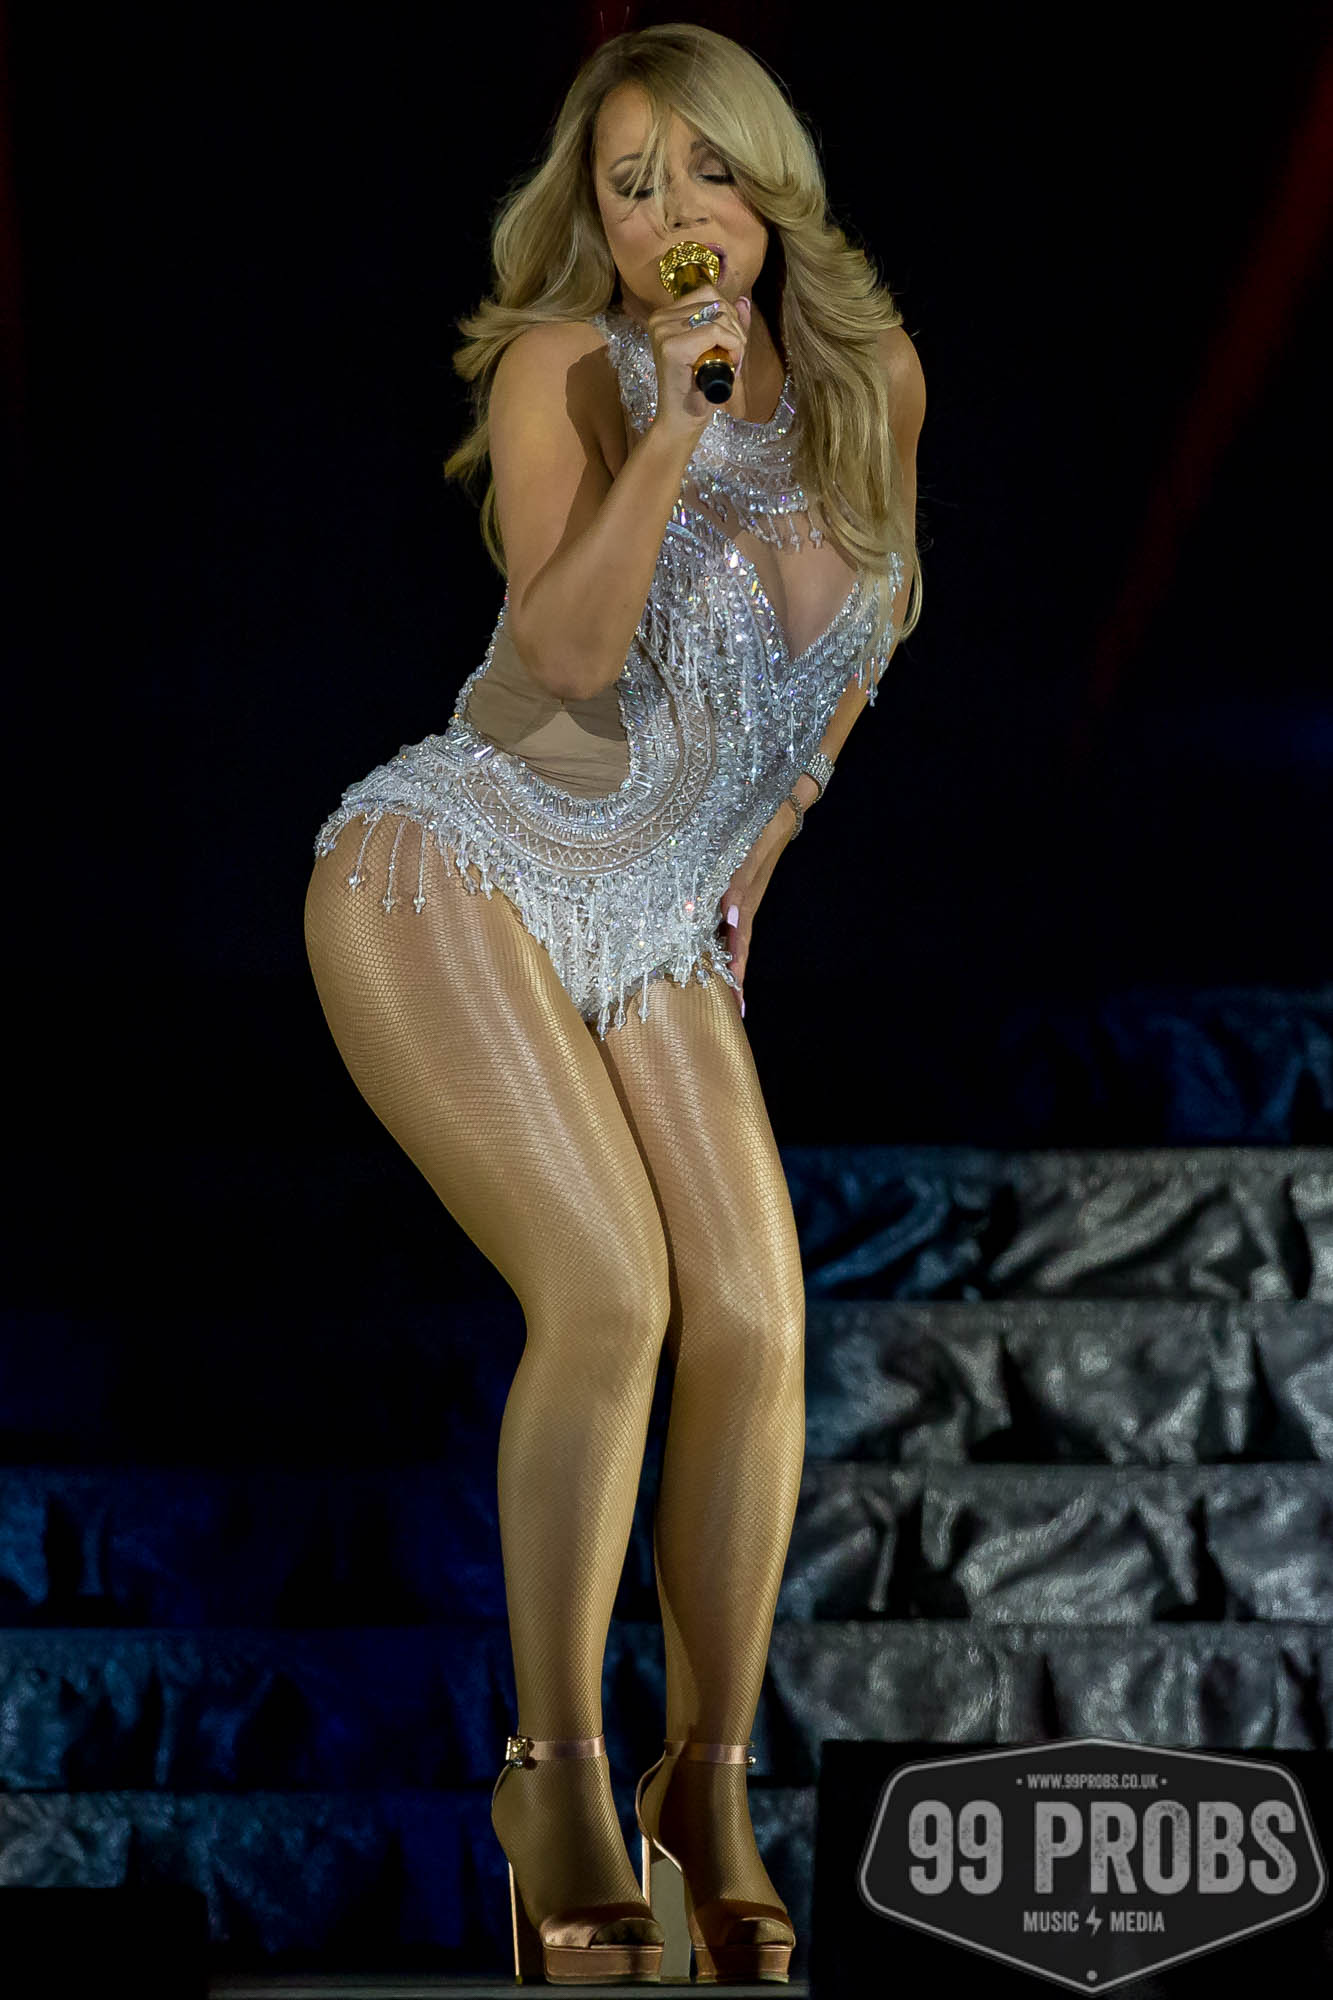 Press Photography Norwich. Mariah Carey